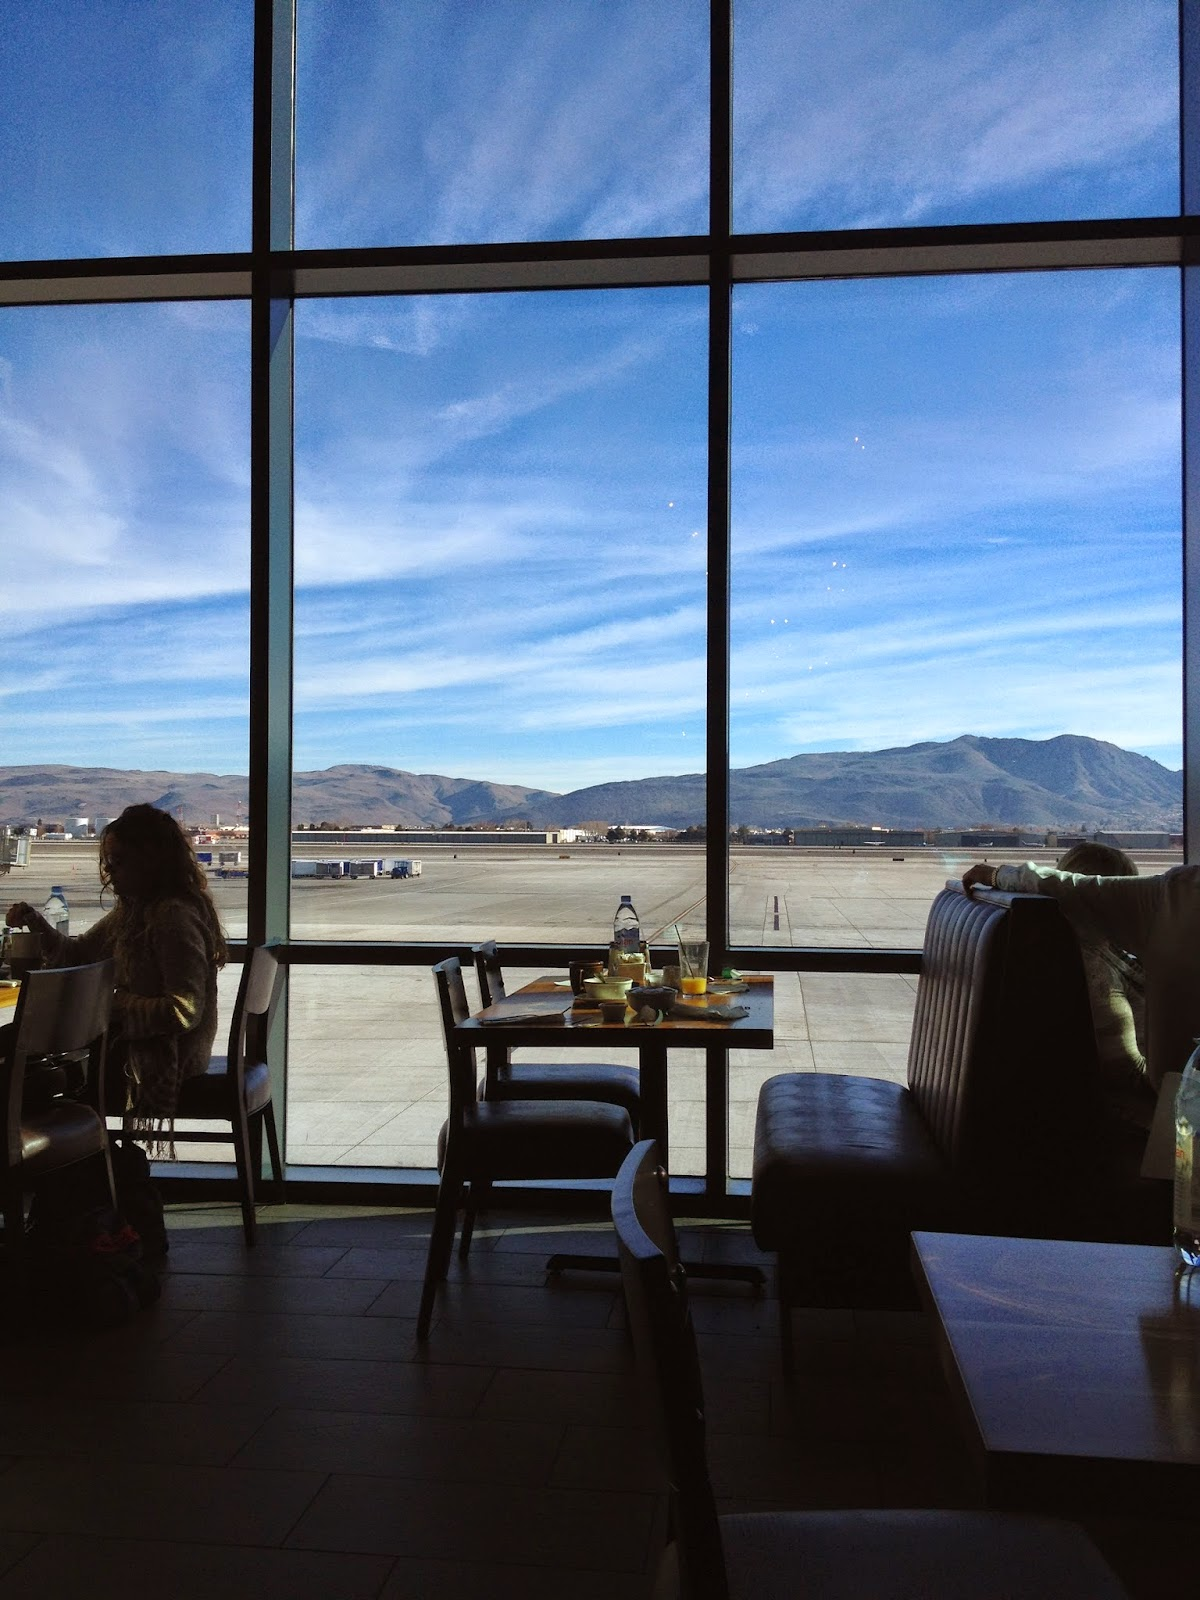 Timber Ridge Restaurant in the Reno Tahoe Airport